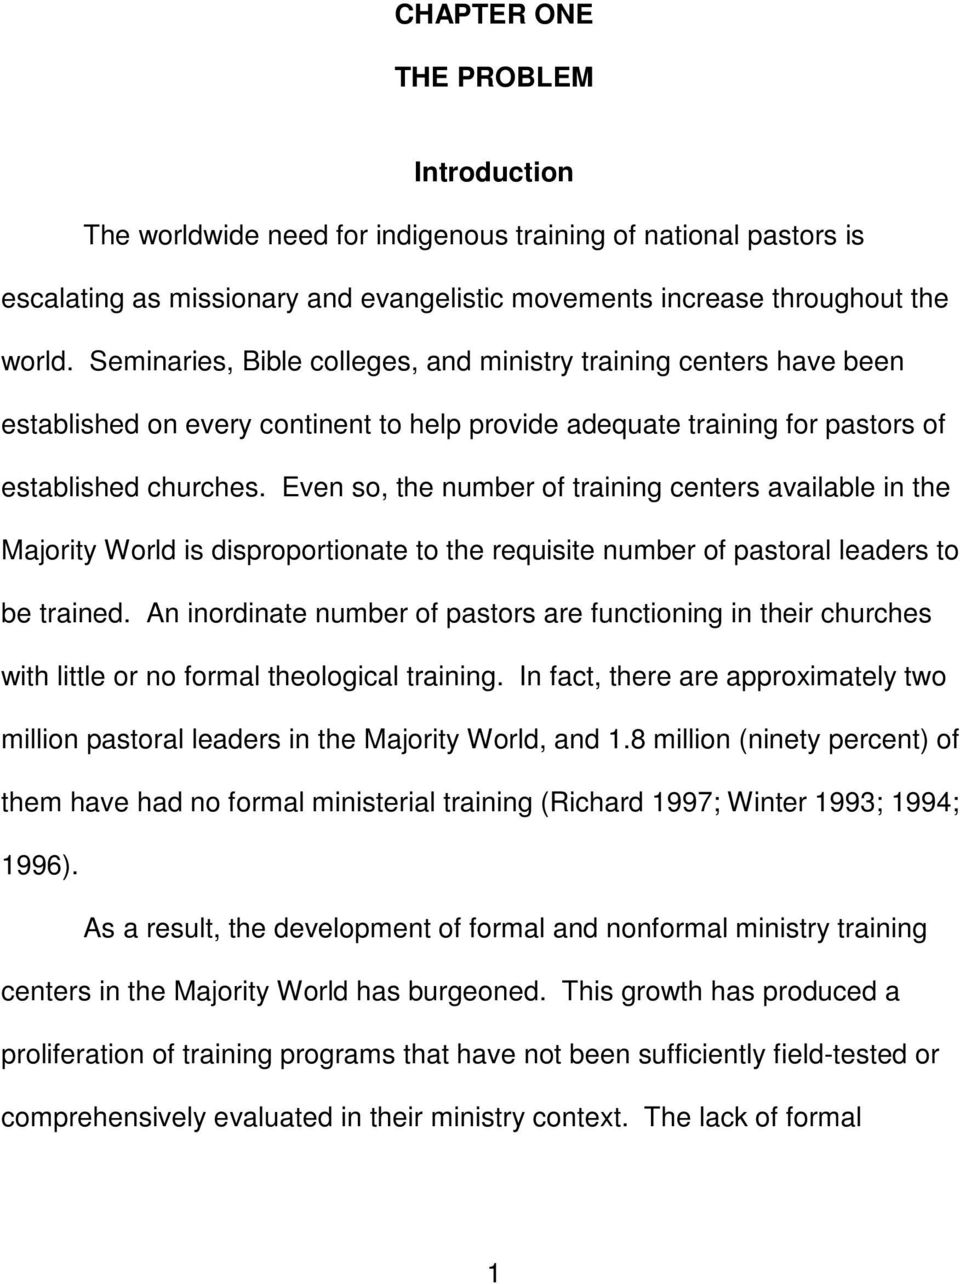 Even so, the number of training centers available in the Majority World is disproportionate to the requisite number of pastoral leaders to be trained.